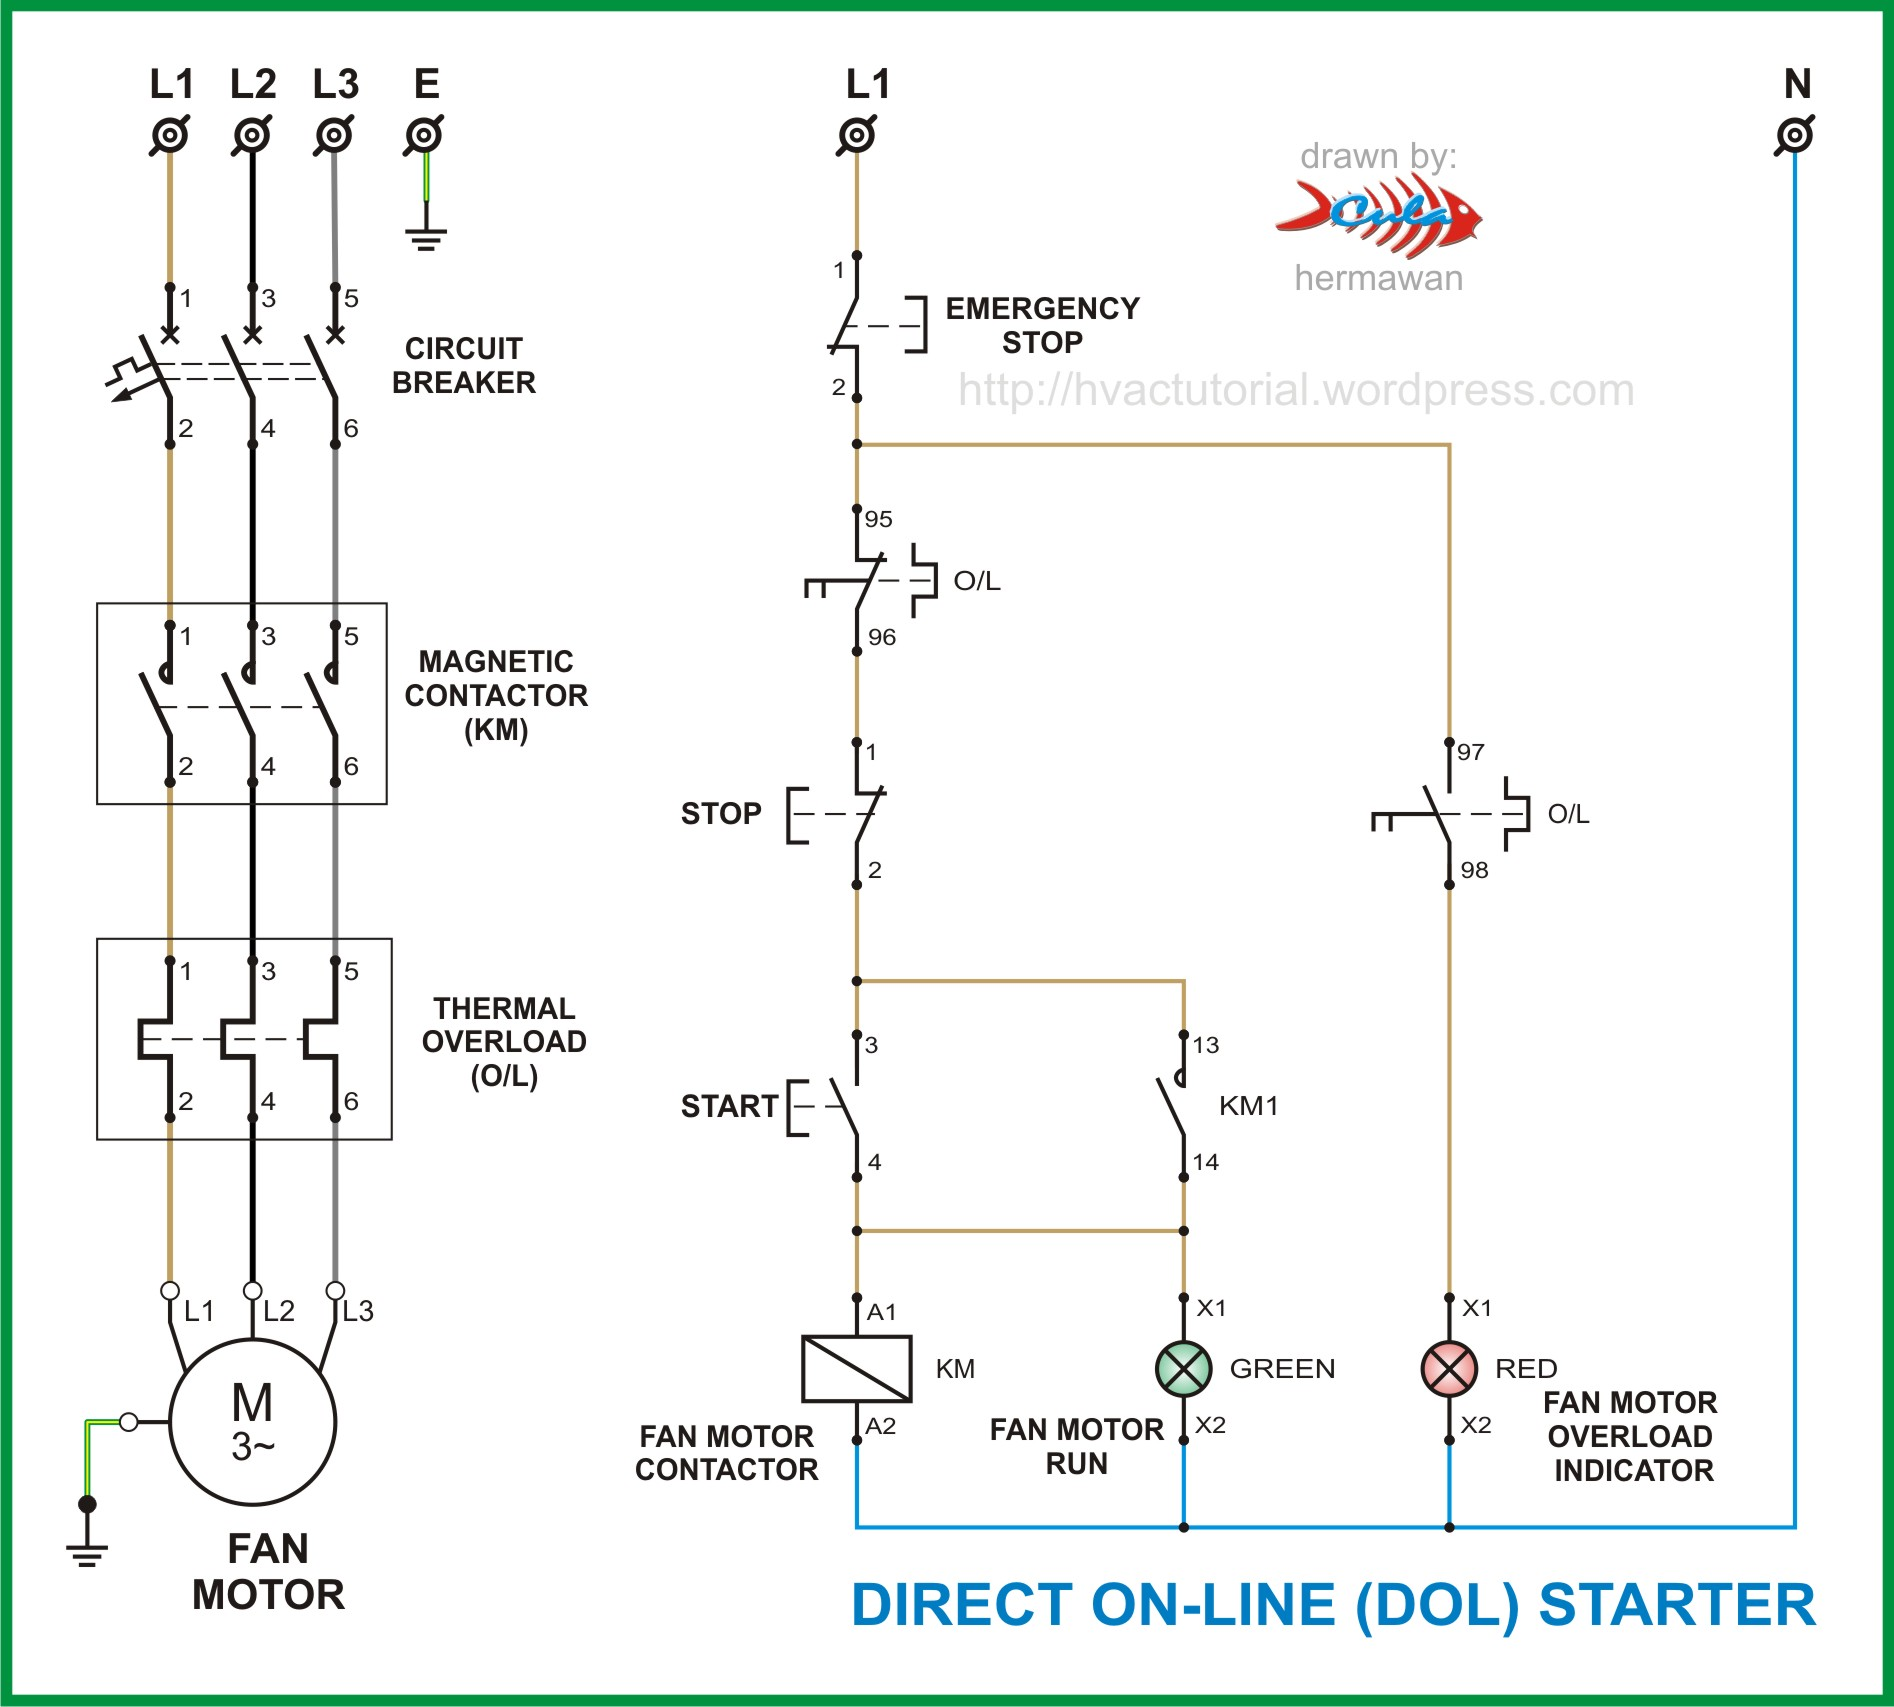 6 Lead 480 Volt Wiring Diagrams Wire 3 Phase Motor Schematic Diagram Get Free Lighting